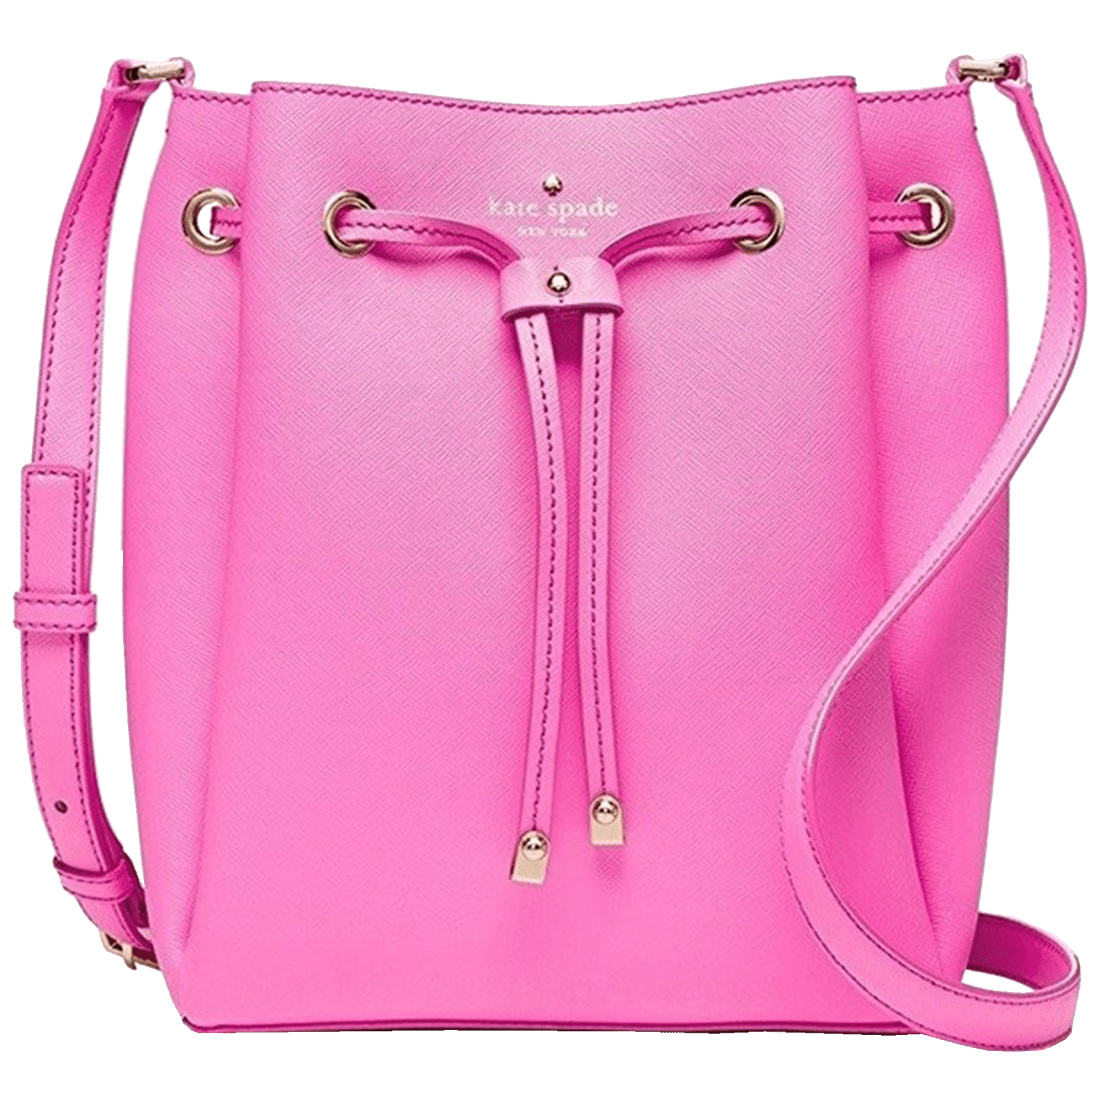 Kate spade wallet png. Cape drive harriet drawstring